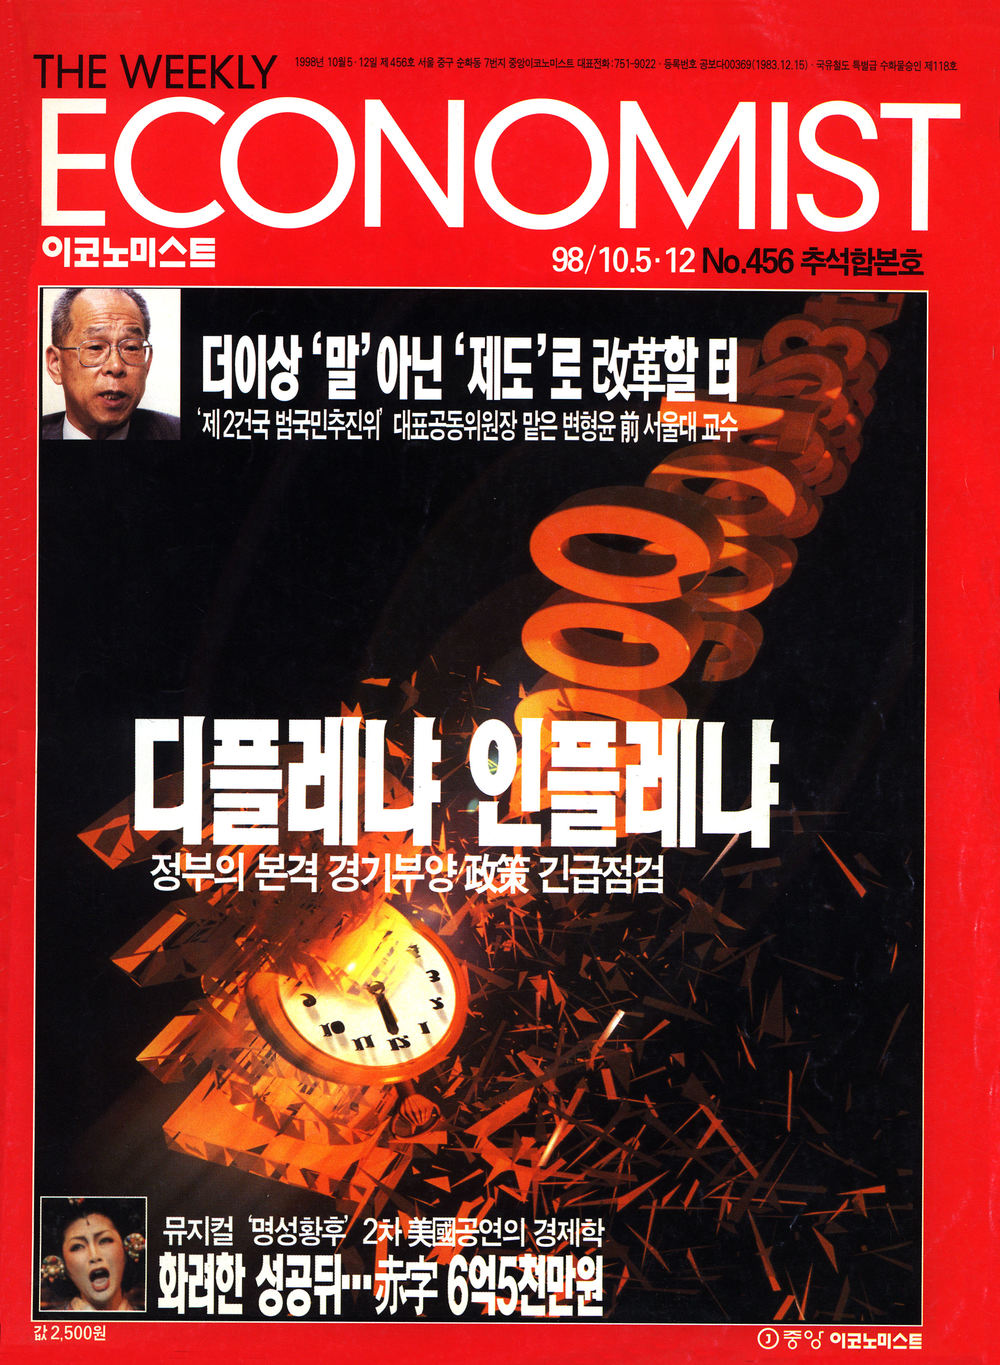 1998-10 The Weekly Economist cover.jpg